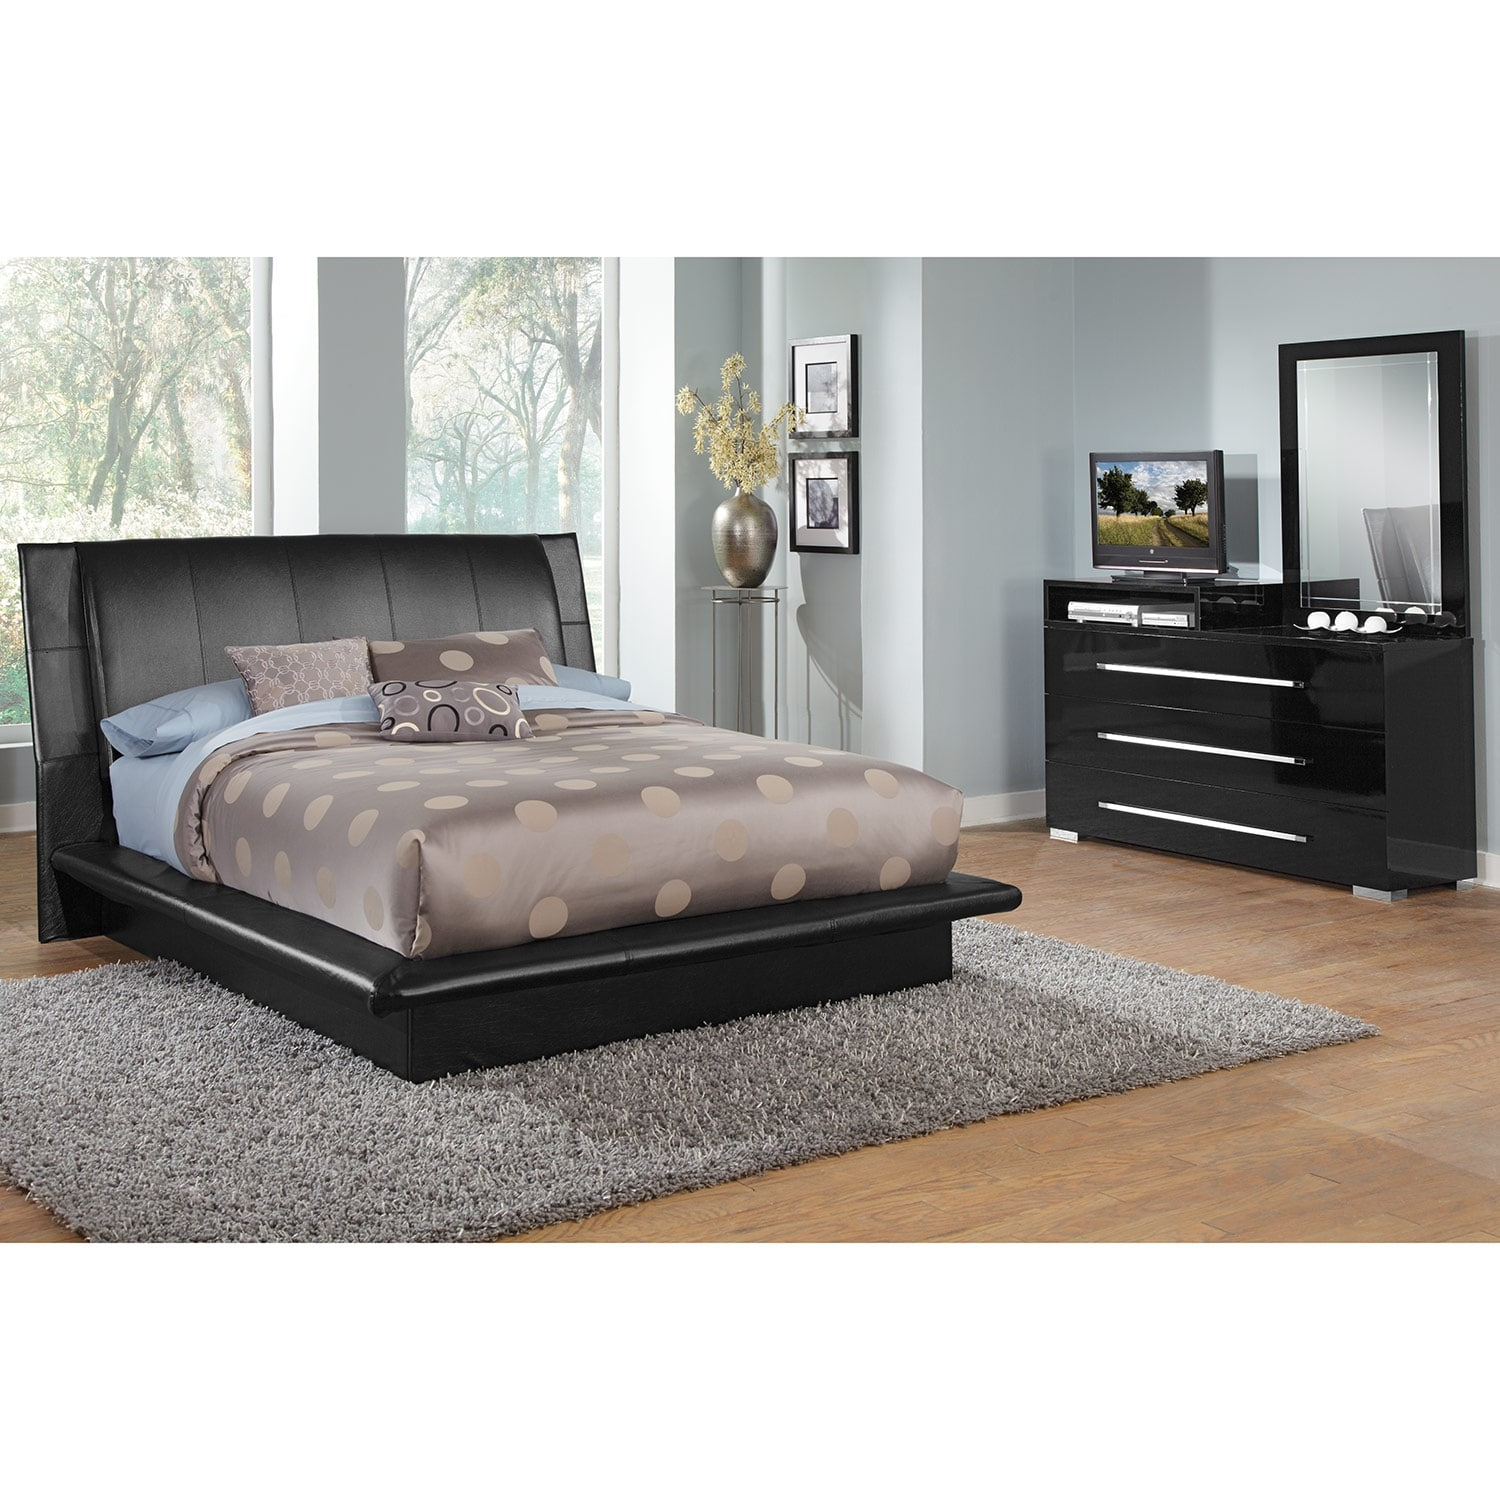 Dimora black 5 pc queen bedroom value city furniture for Cheap bedroom furniture packages